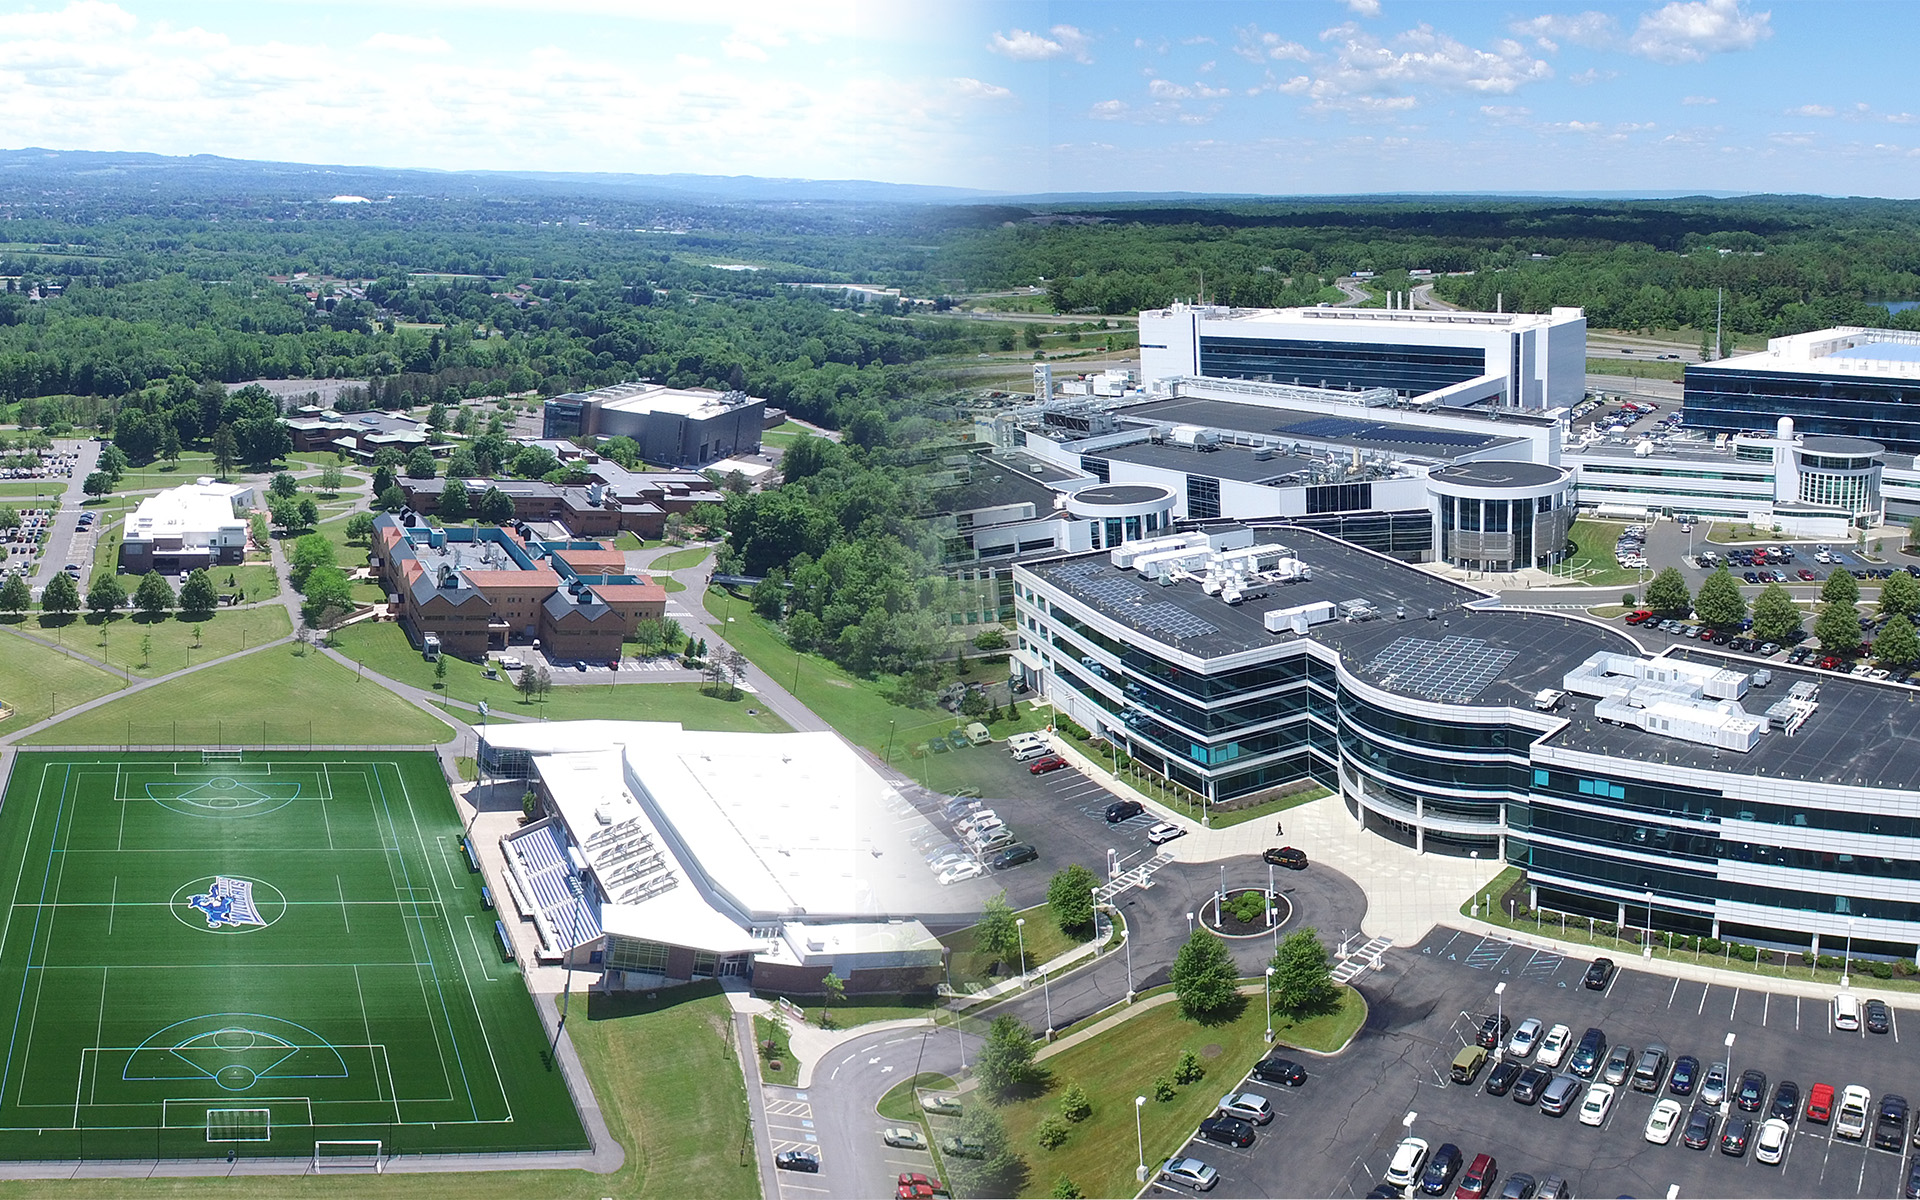 Image of SUNY Poly's Utica campus and Albany campus merged in the middle